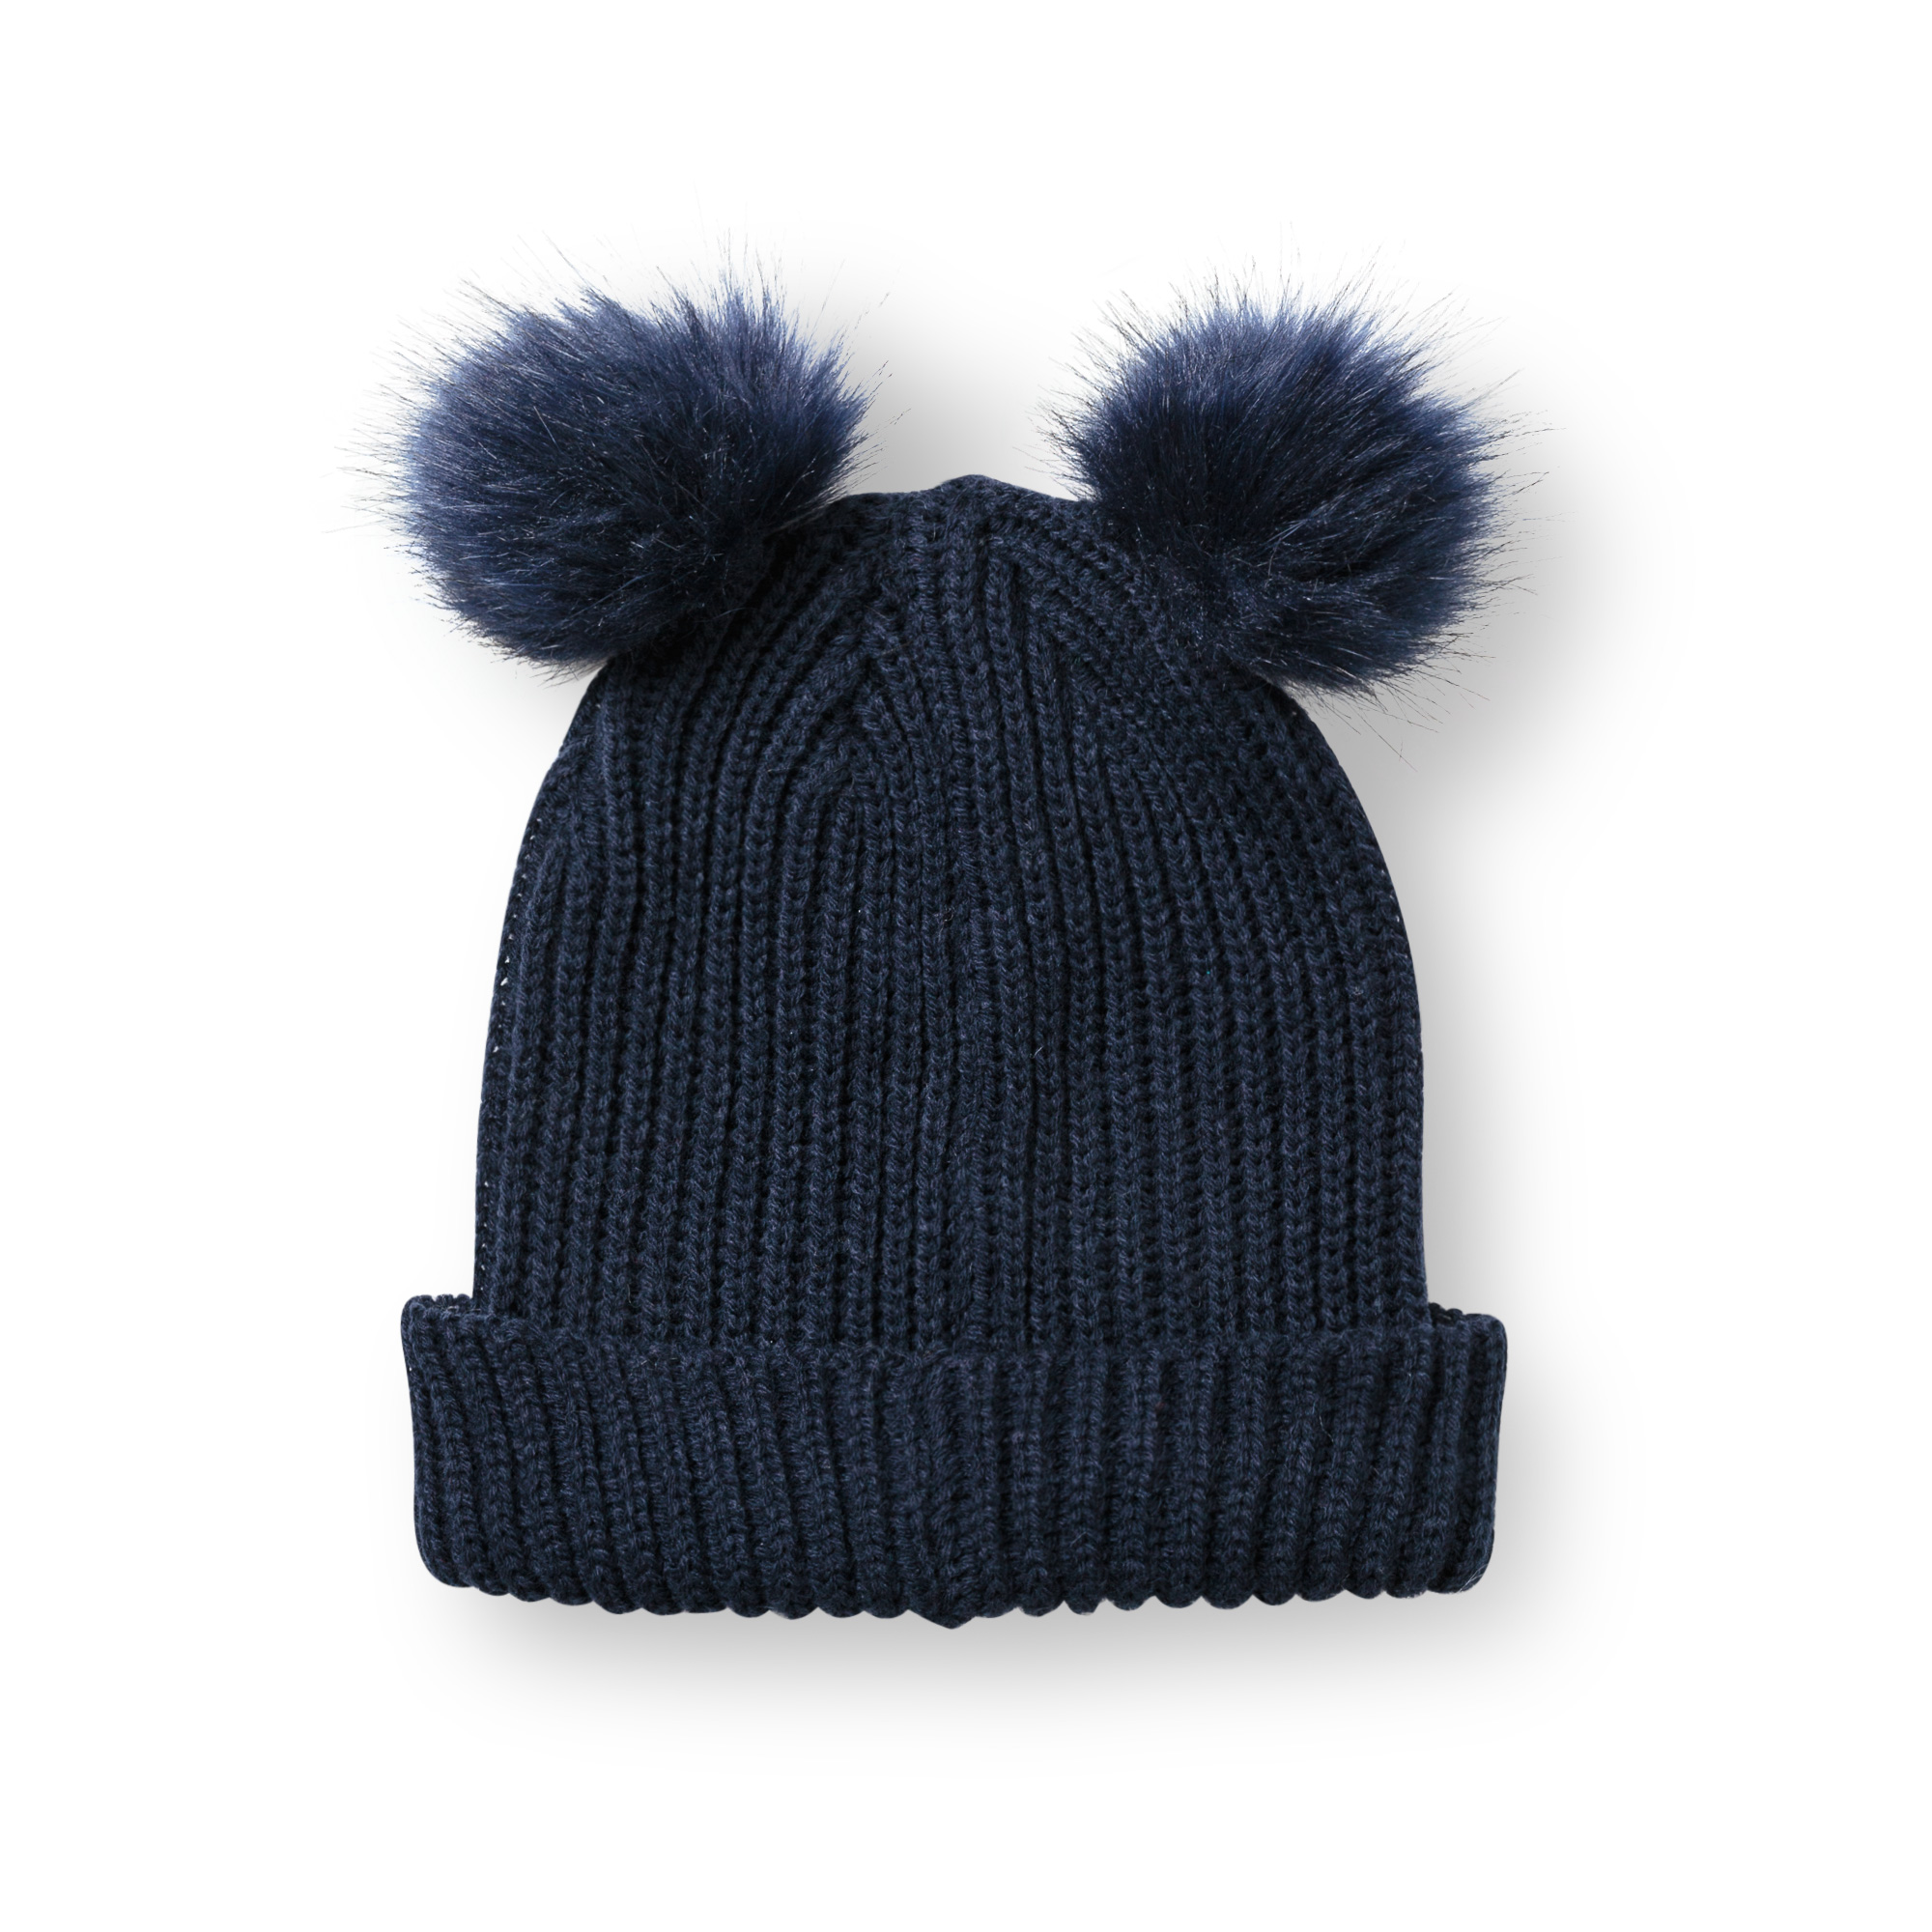 3e3493fb05e Navy Luxe Faux Fur Pom Pom Hat